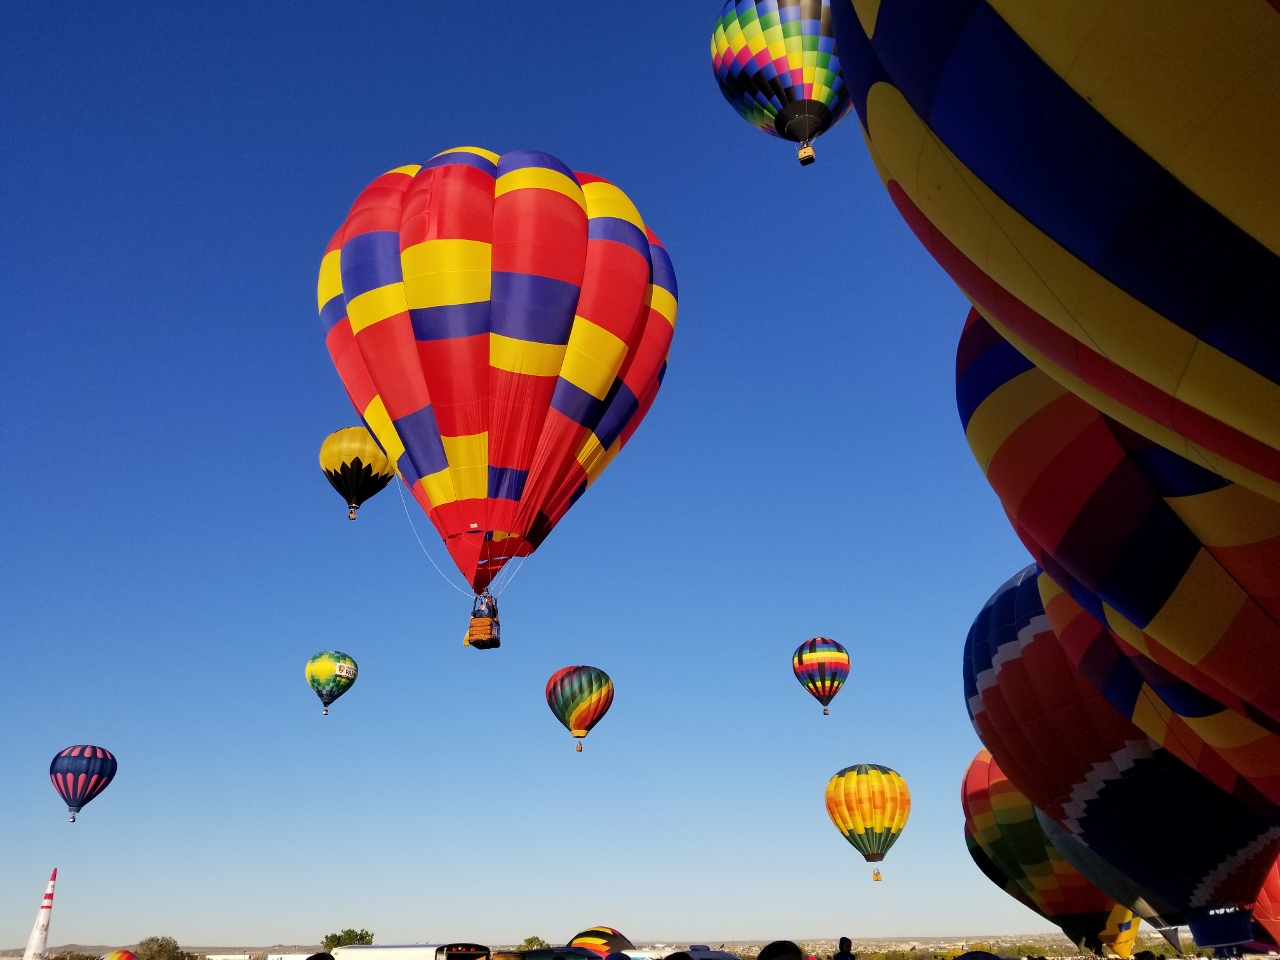 The colorful Albuquerque Balloon Fiesta